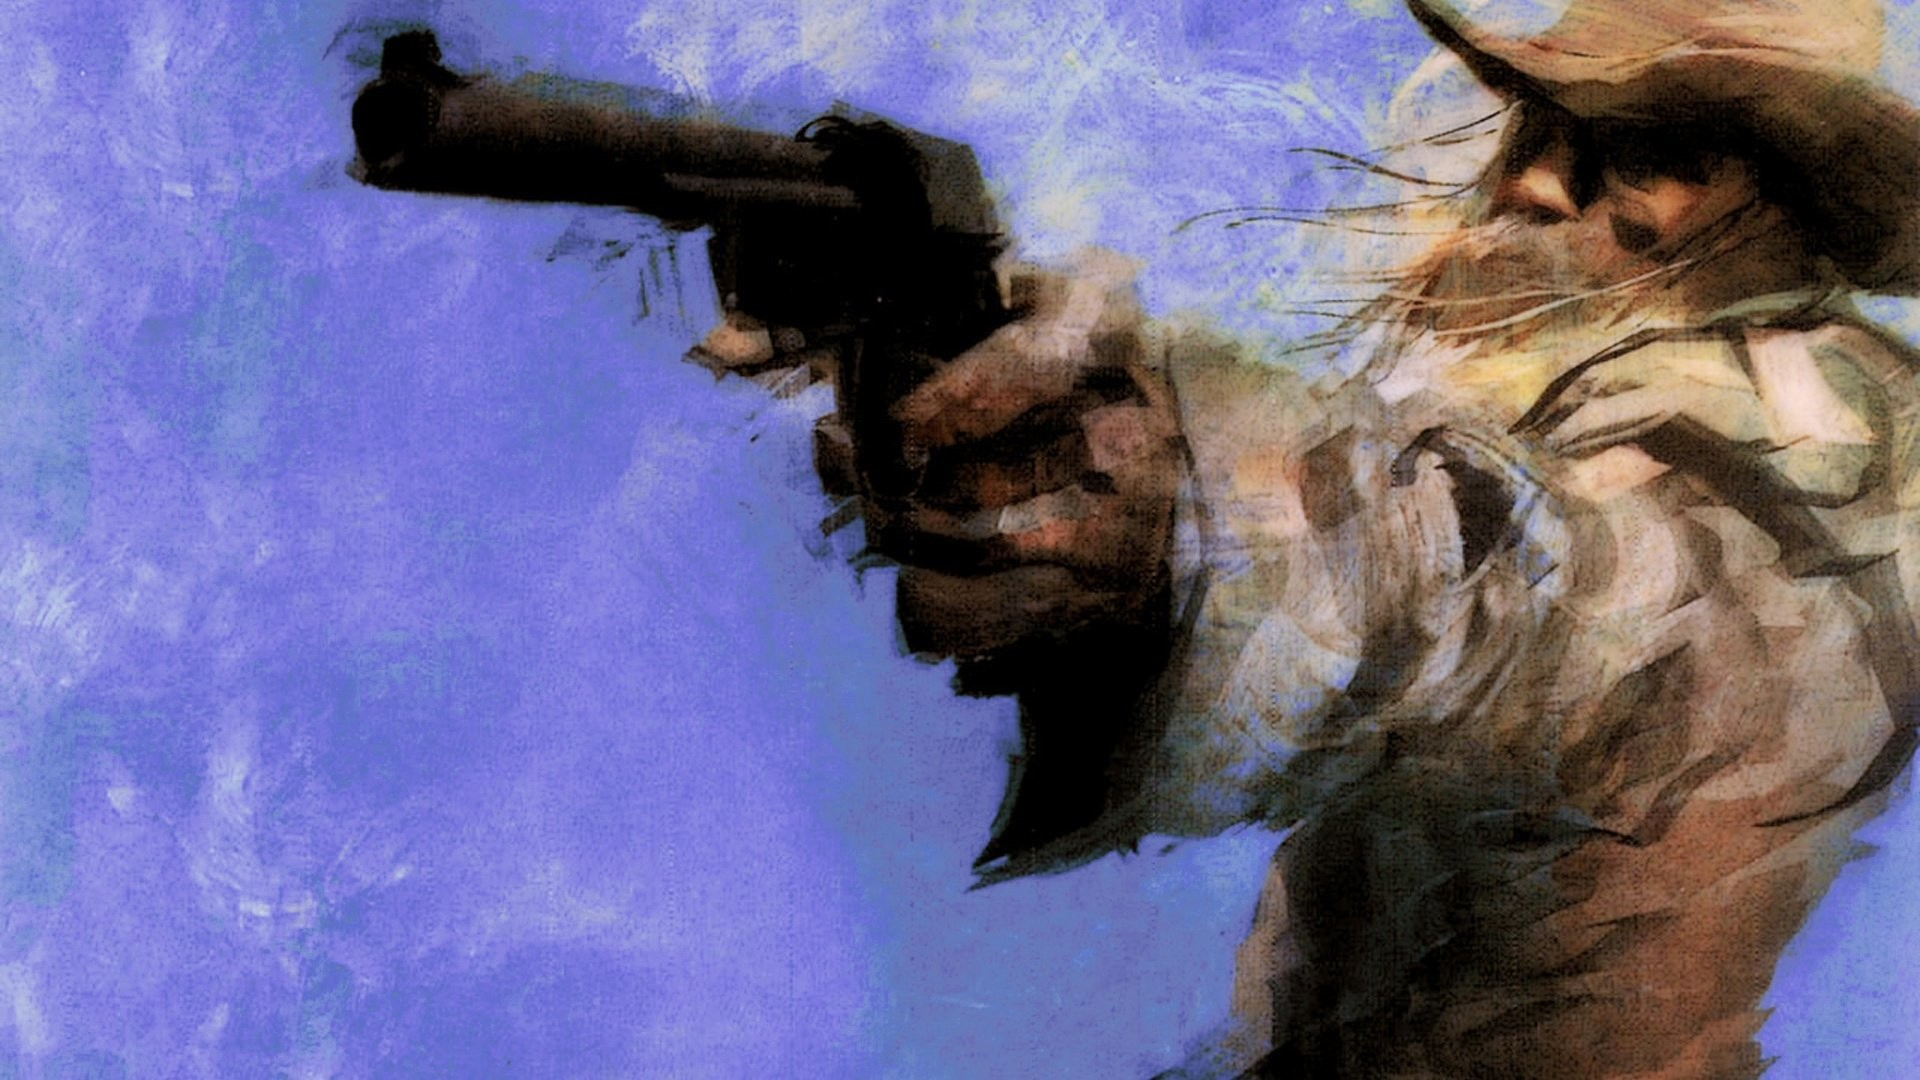 Res: 1920x1080, Painting old west gunman cowboy revolver wallpaper |  | 704337 |  WallpaperUP